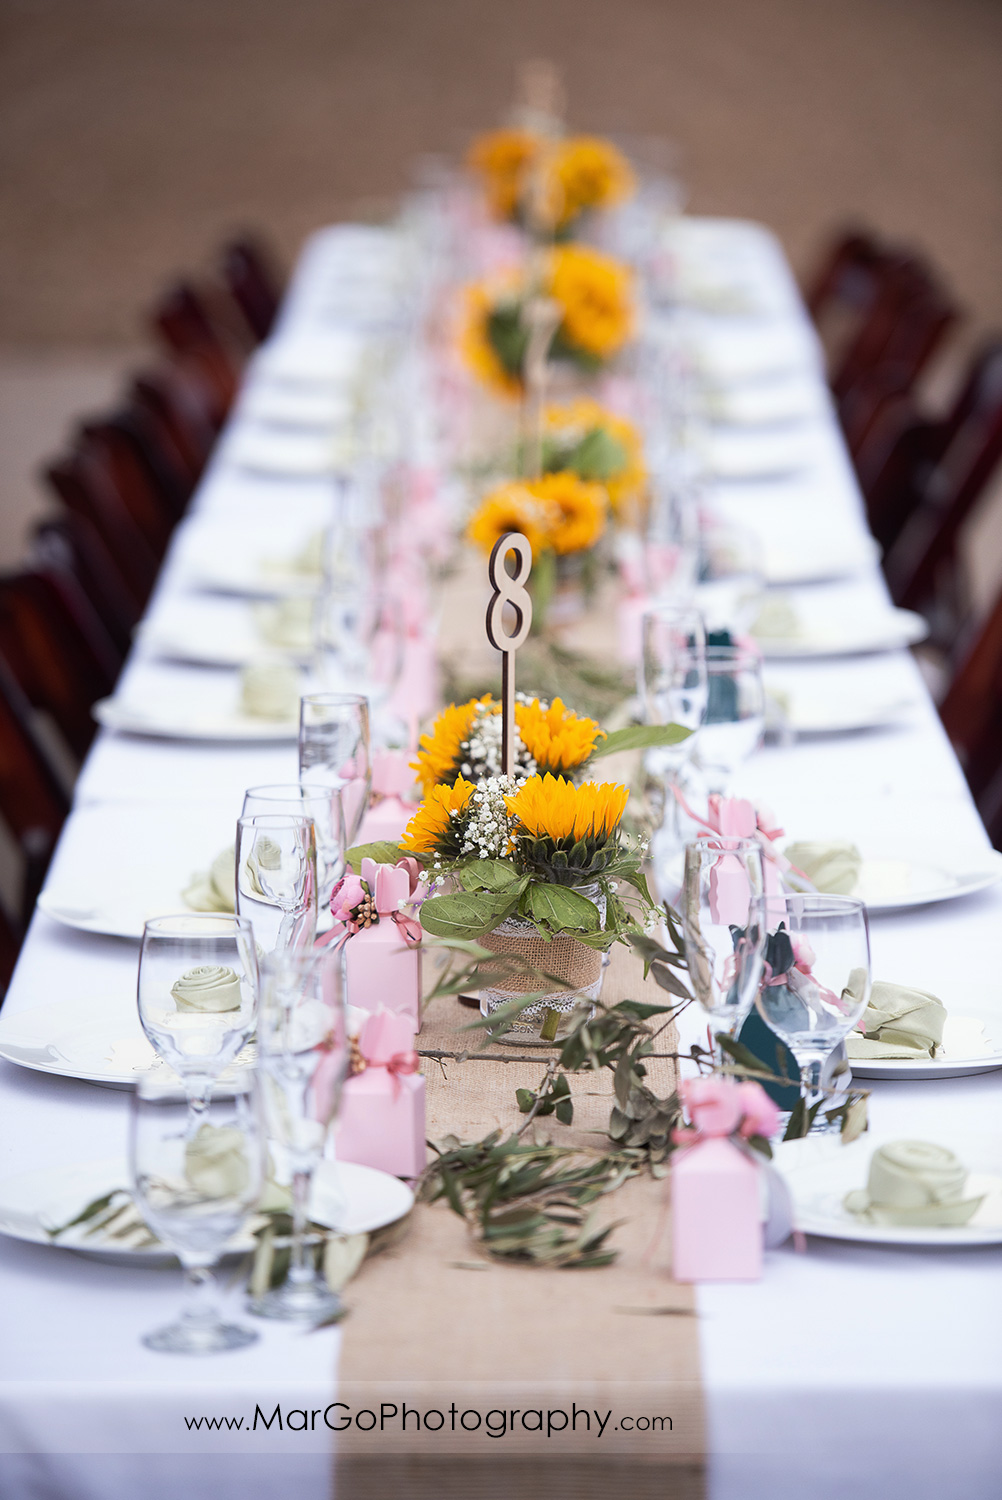 yellow flowers wedding table decor at Long Branch Saloon & Farms in Half Moon Bay